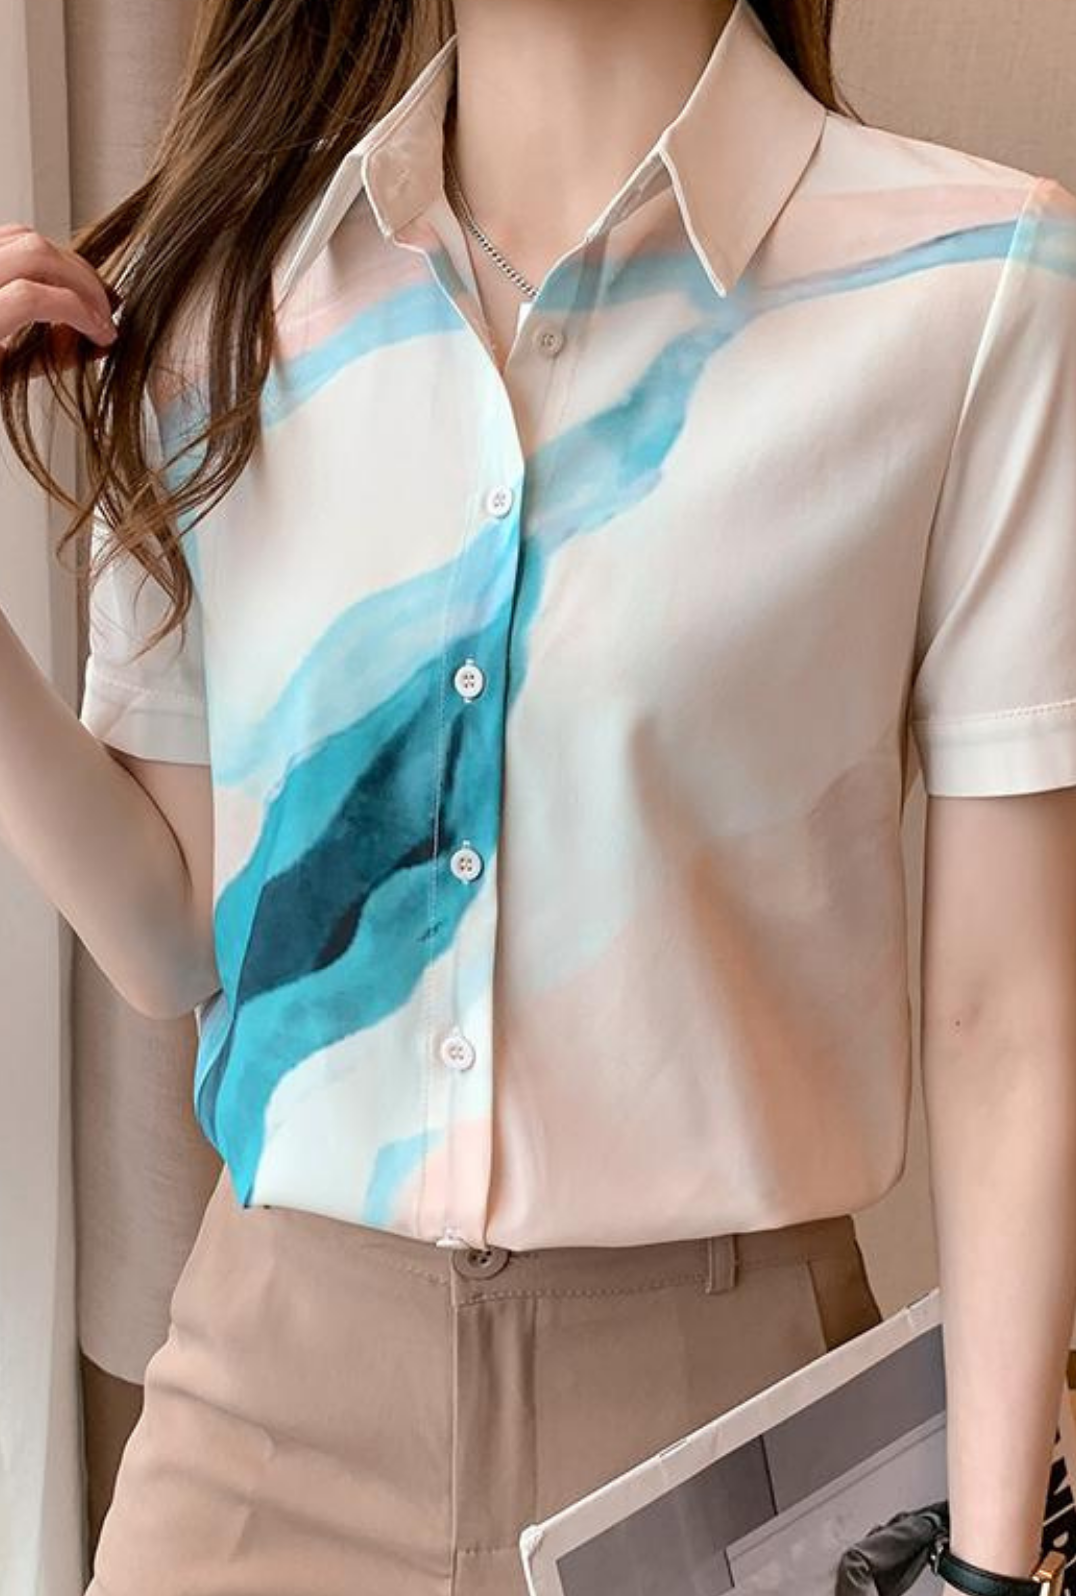 Summer small shirt fashion shirt for women